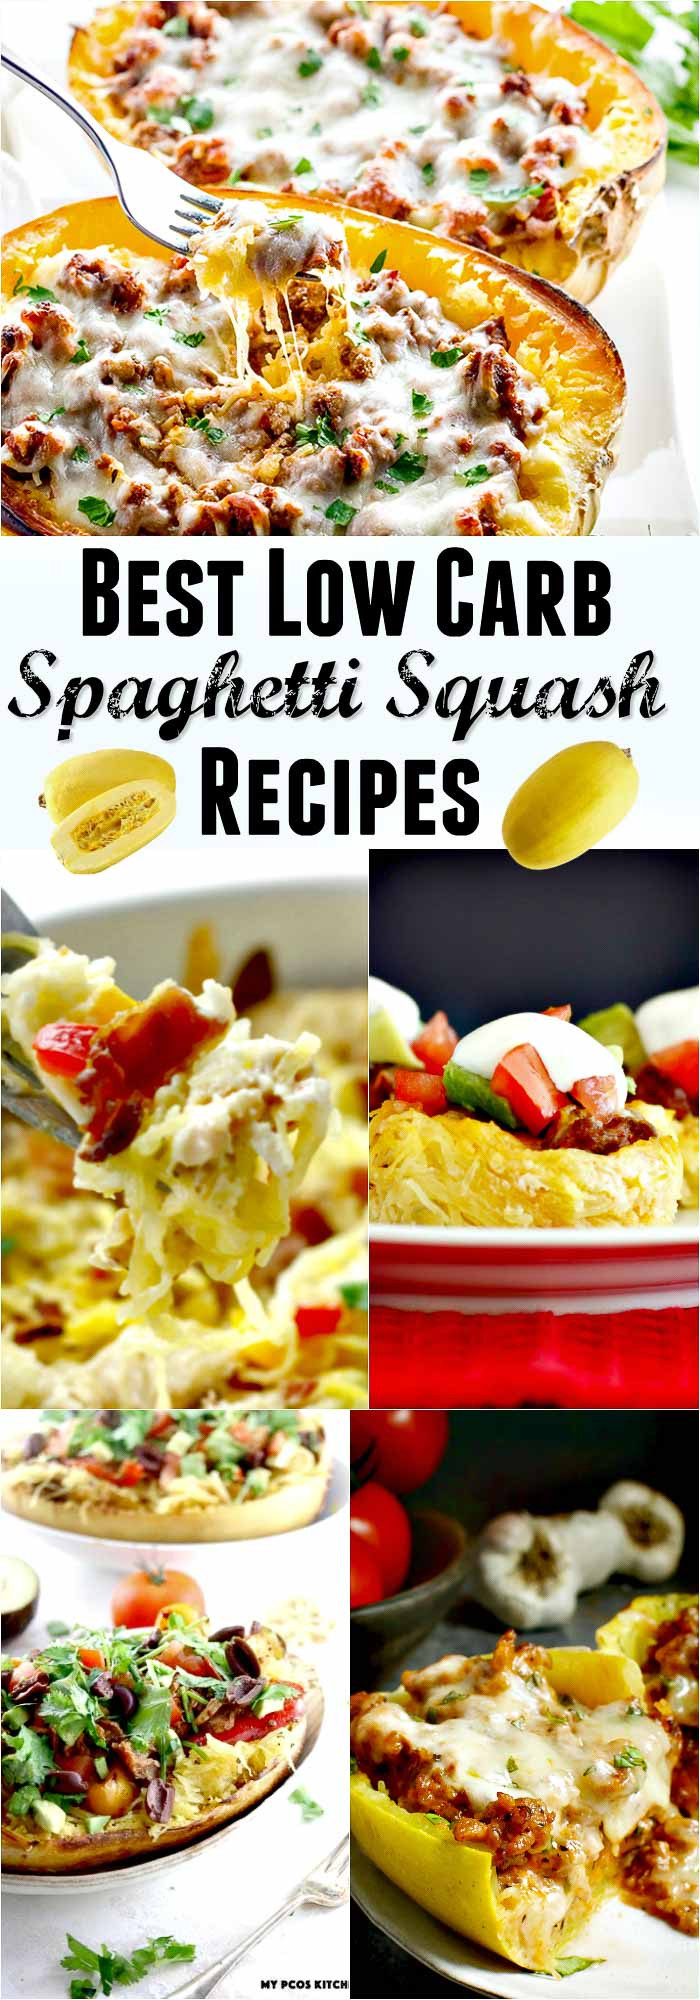 Low Carb Squash Recipes  Best Low Carb Spaghetti Squash Recipe Collection